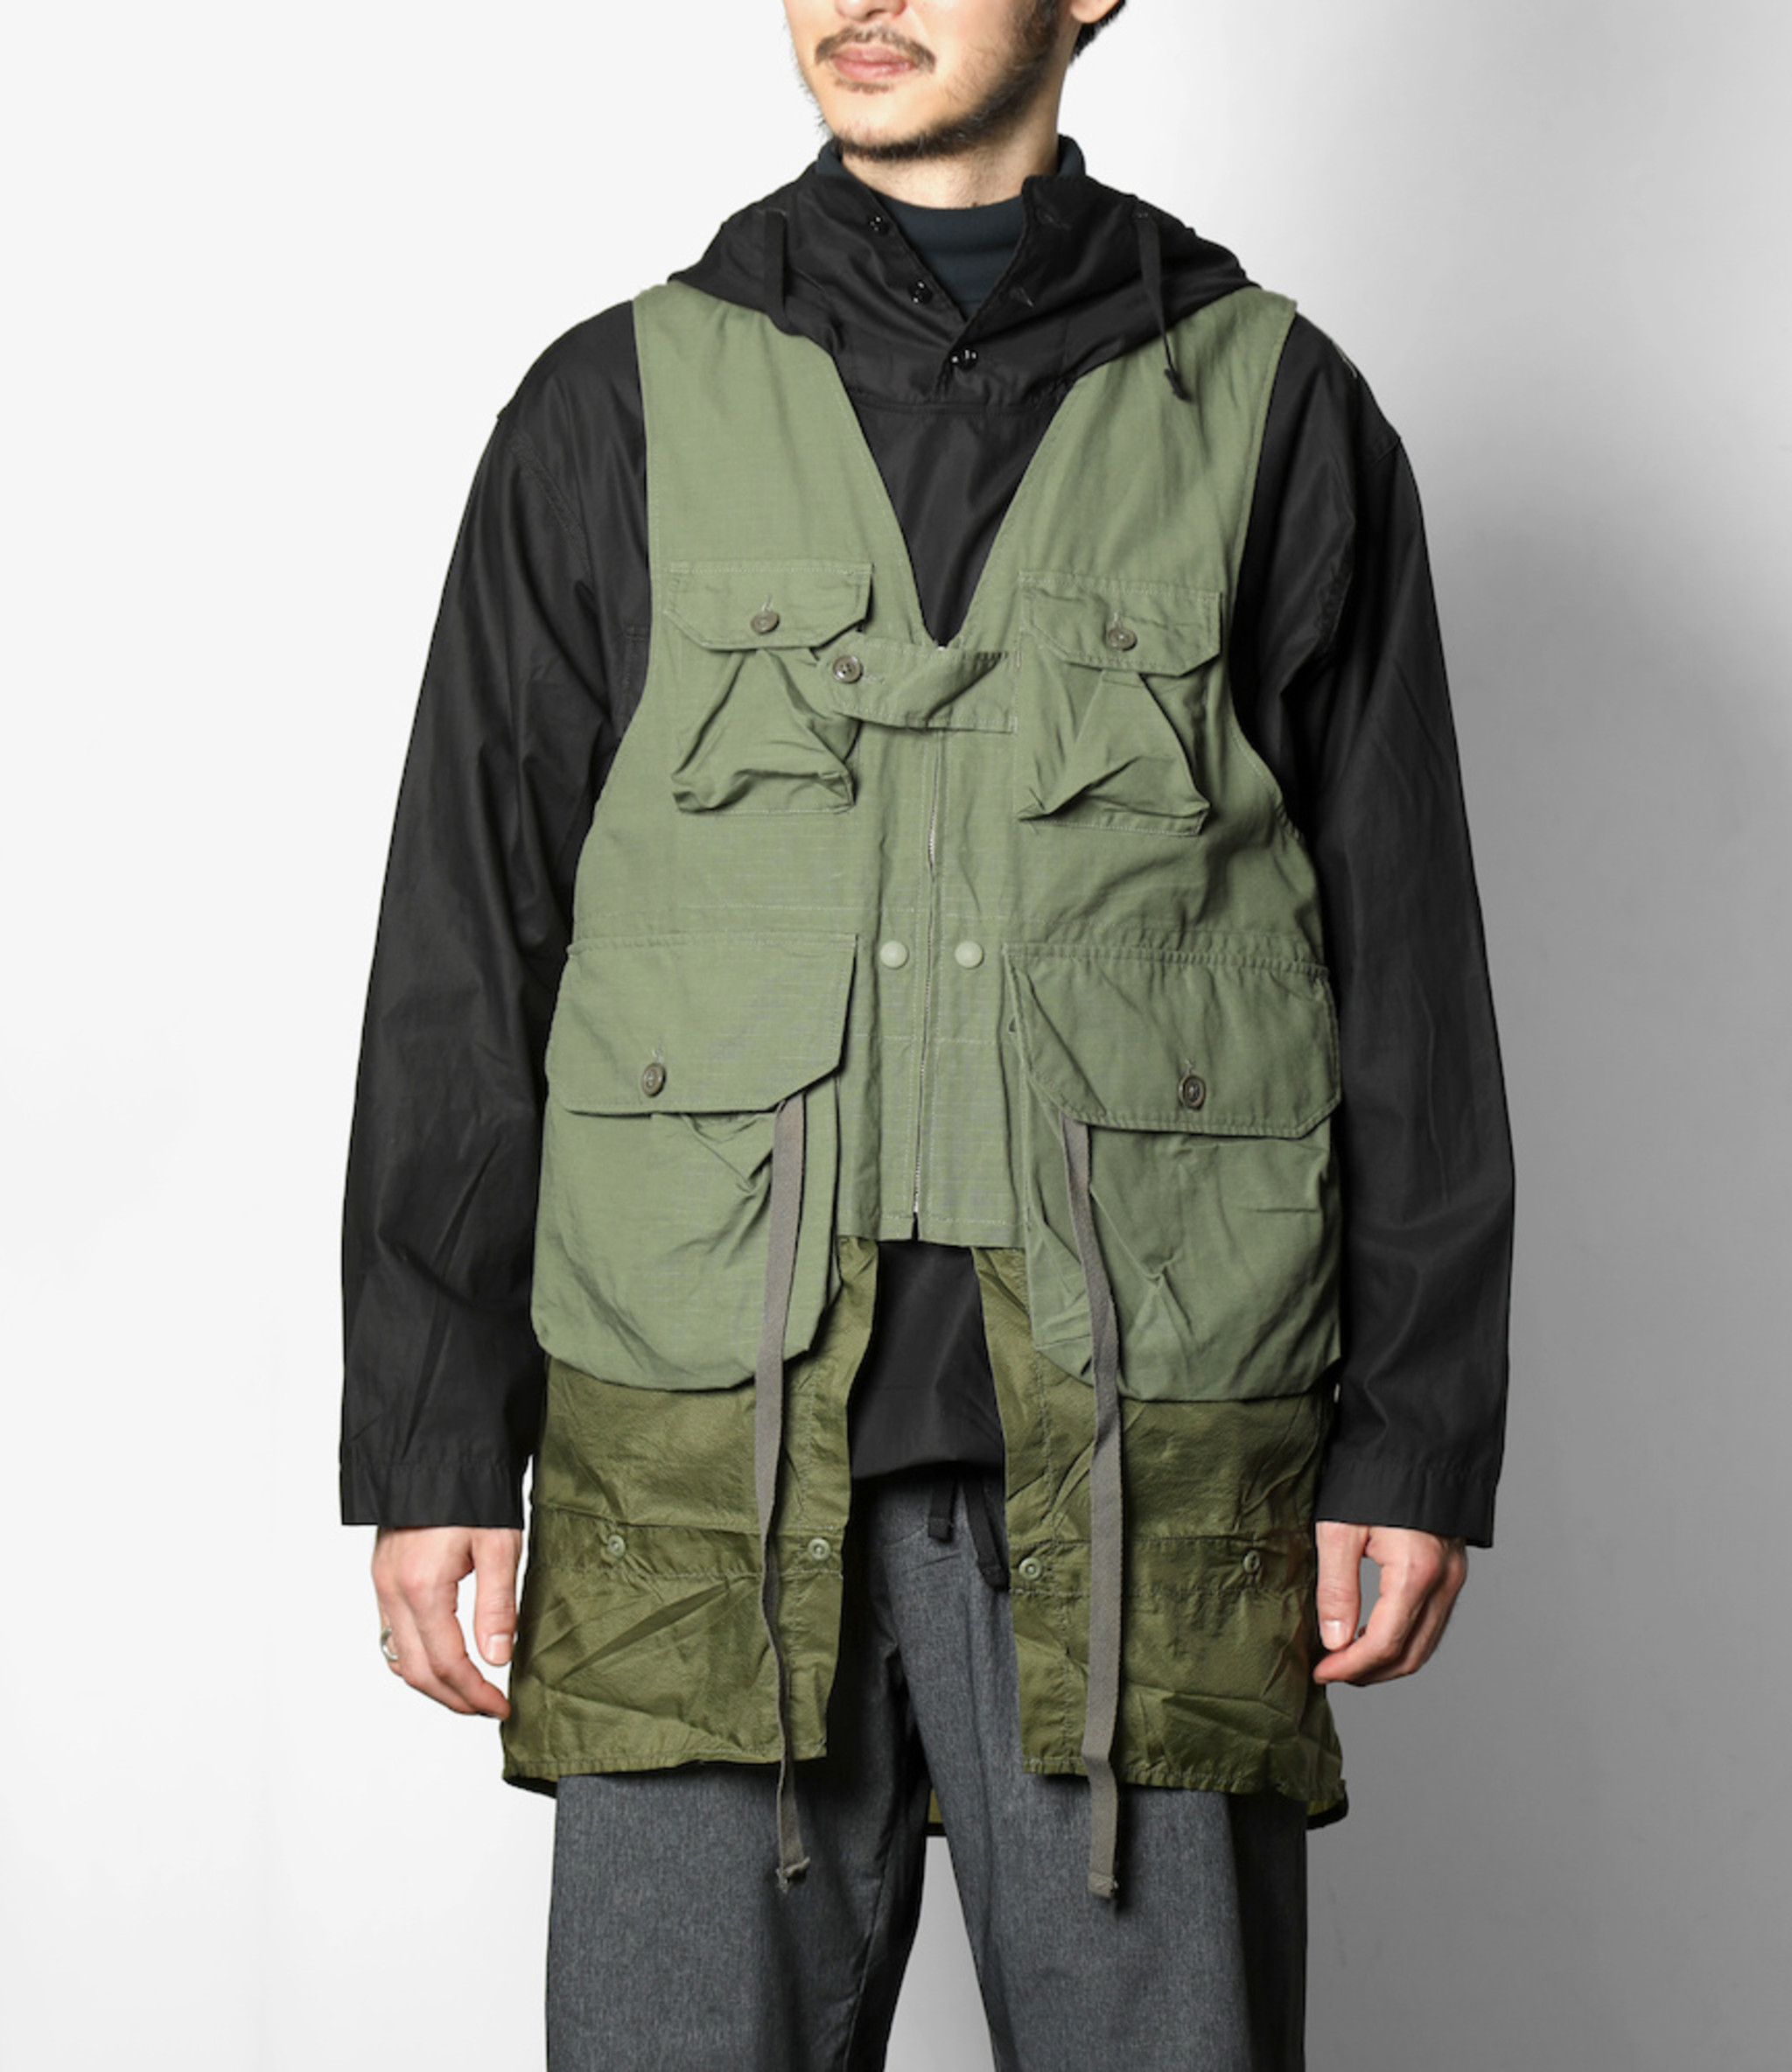 Engineered Garments Game Vest - Olive Cotton Ripstop